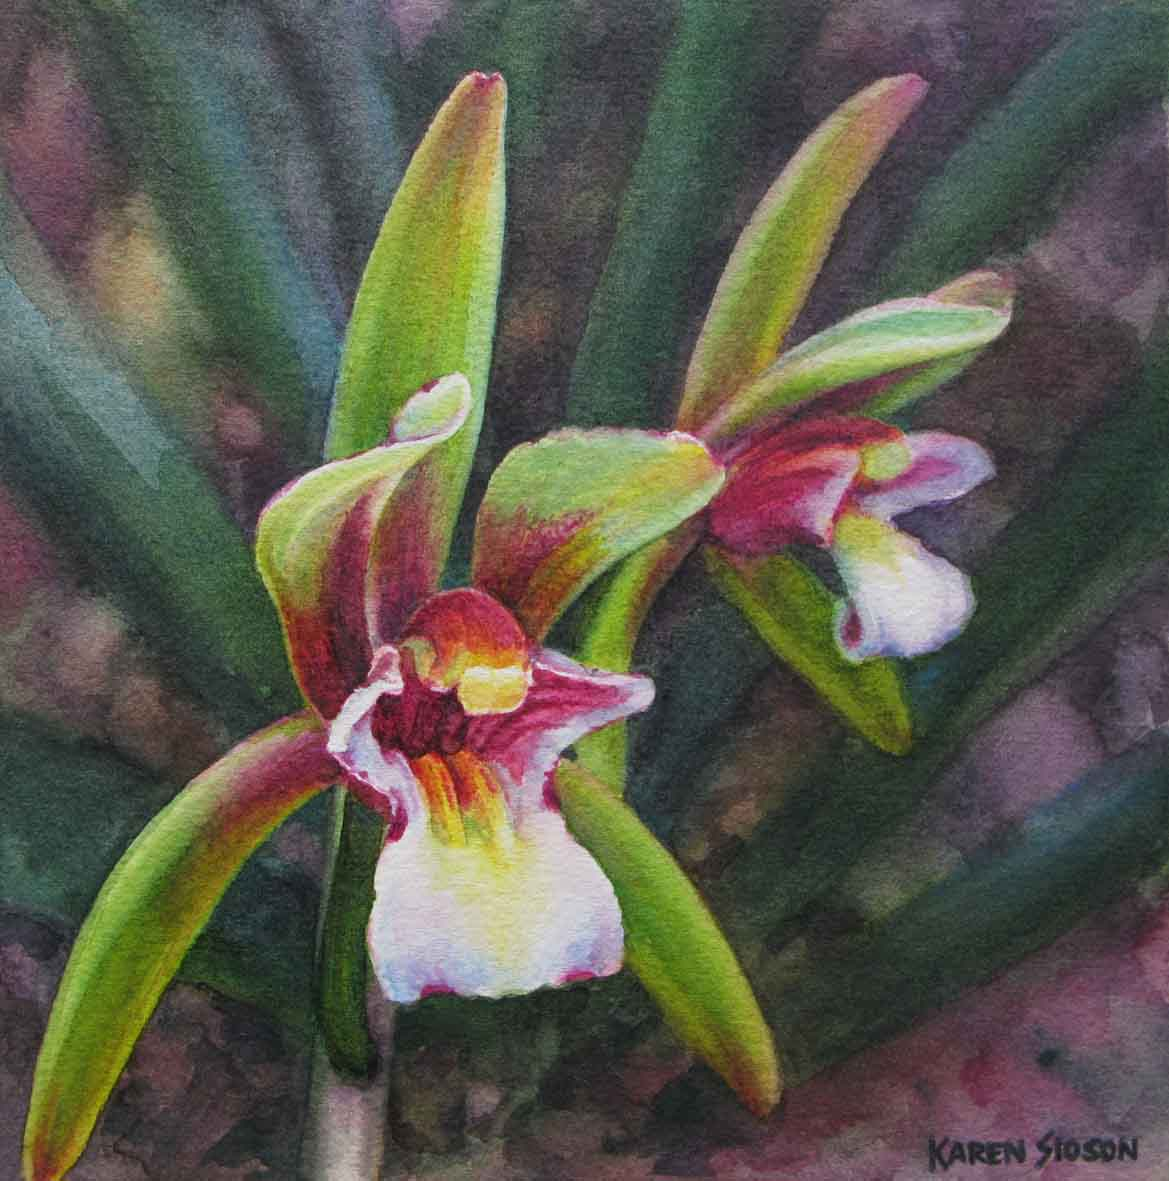 karensioson_green_orchids